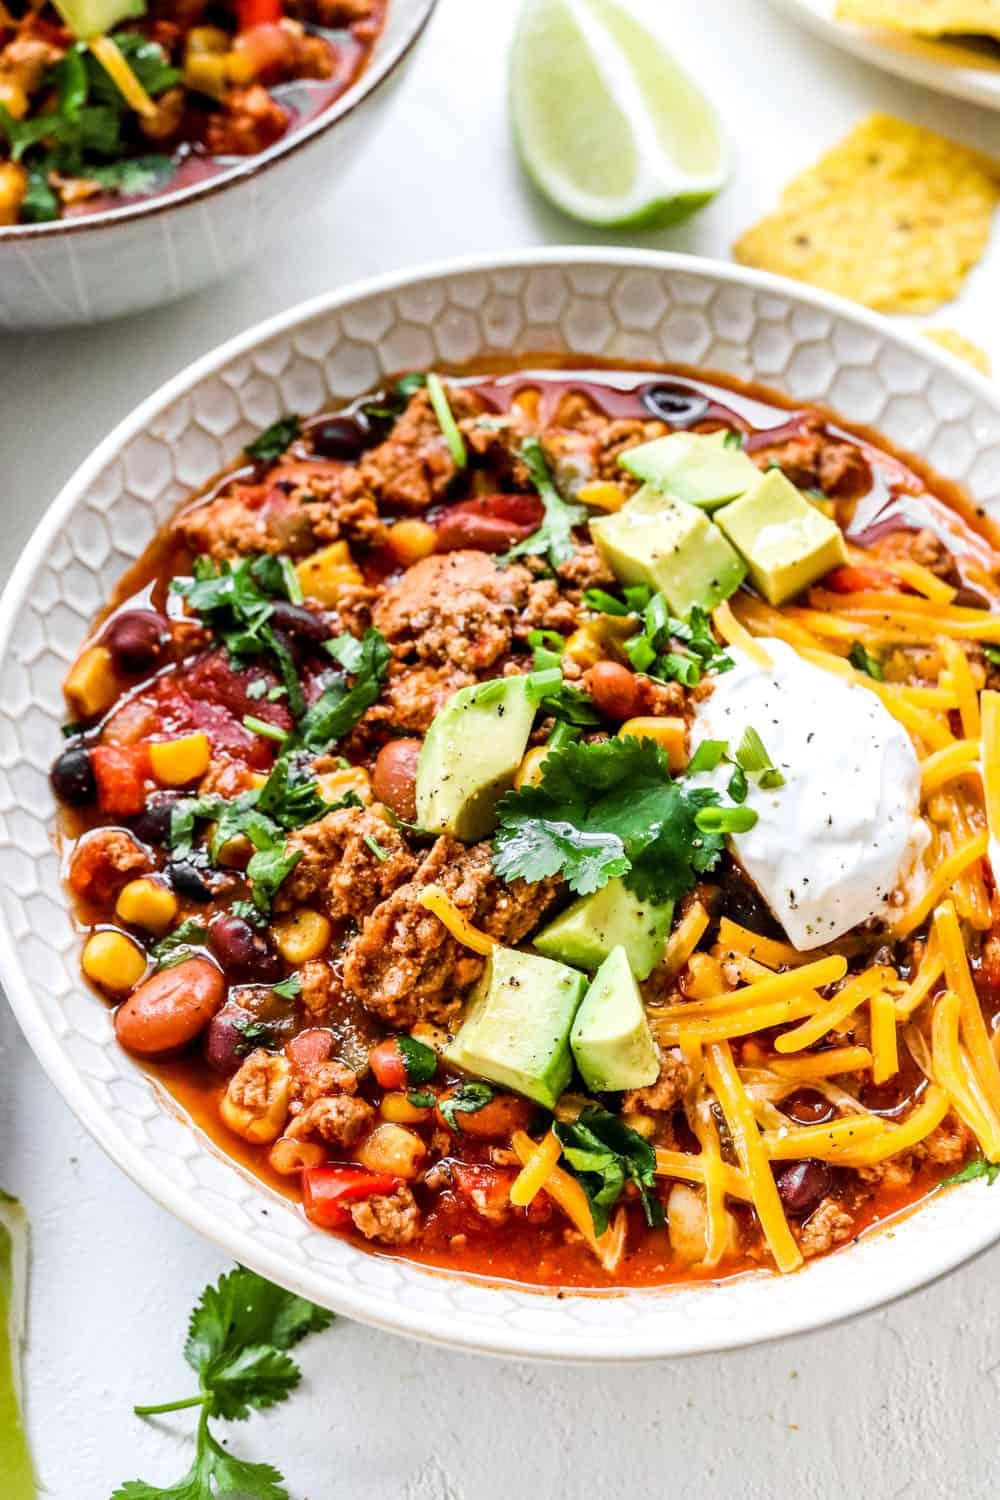 Turkey chili in a round white bowl with avocado and cheese on top of it